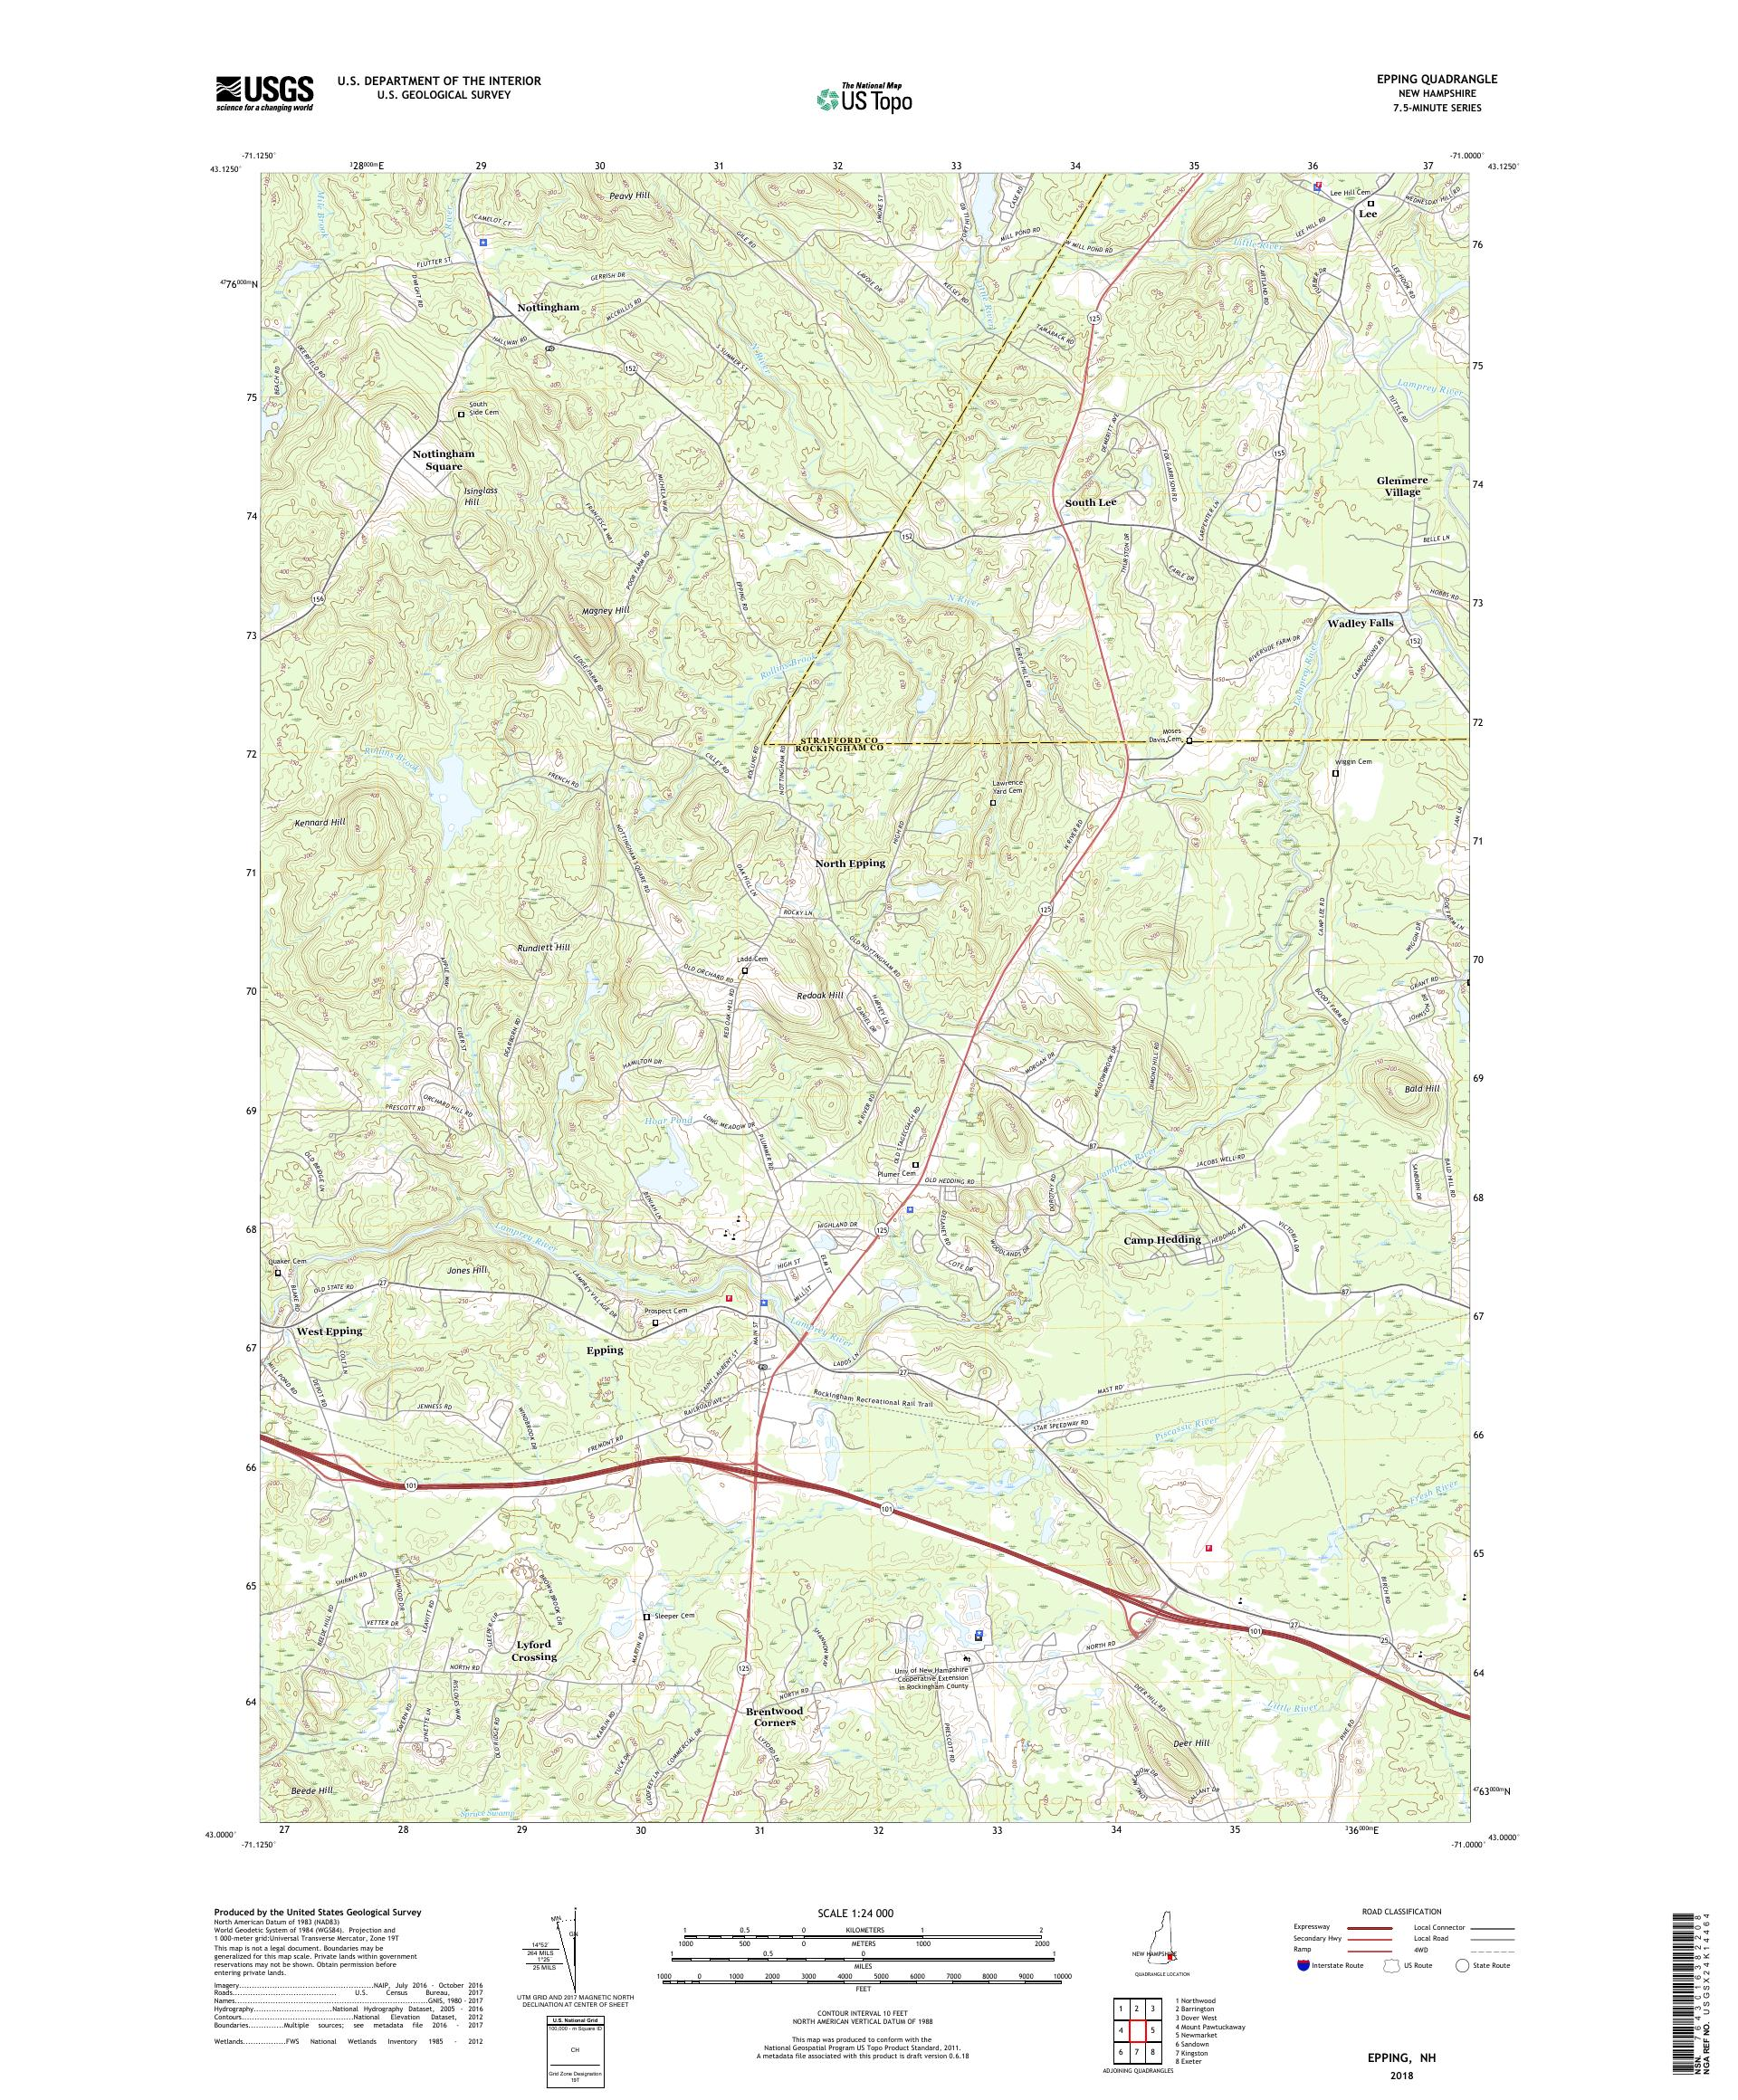 MyTopo Epping, New Hampshire USGS Quad Topo Map on map of riverwood, map of bottineau, map of penshurst, map of zeeland, map of sanbornton, map of turtle lake, map of essex, map of west melbourne, map of boscawen, map of fort totten, map of high beach, map of kearns, map of ray, map of woolloomooloo, map of nashua, map of north ryde, map of lindfield, map of mount sunapee, map of braddock, map of portsmouth,